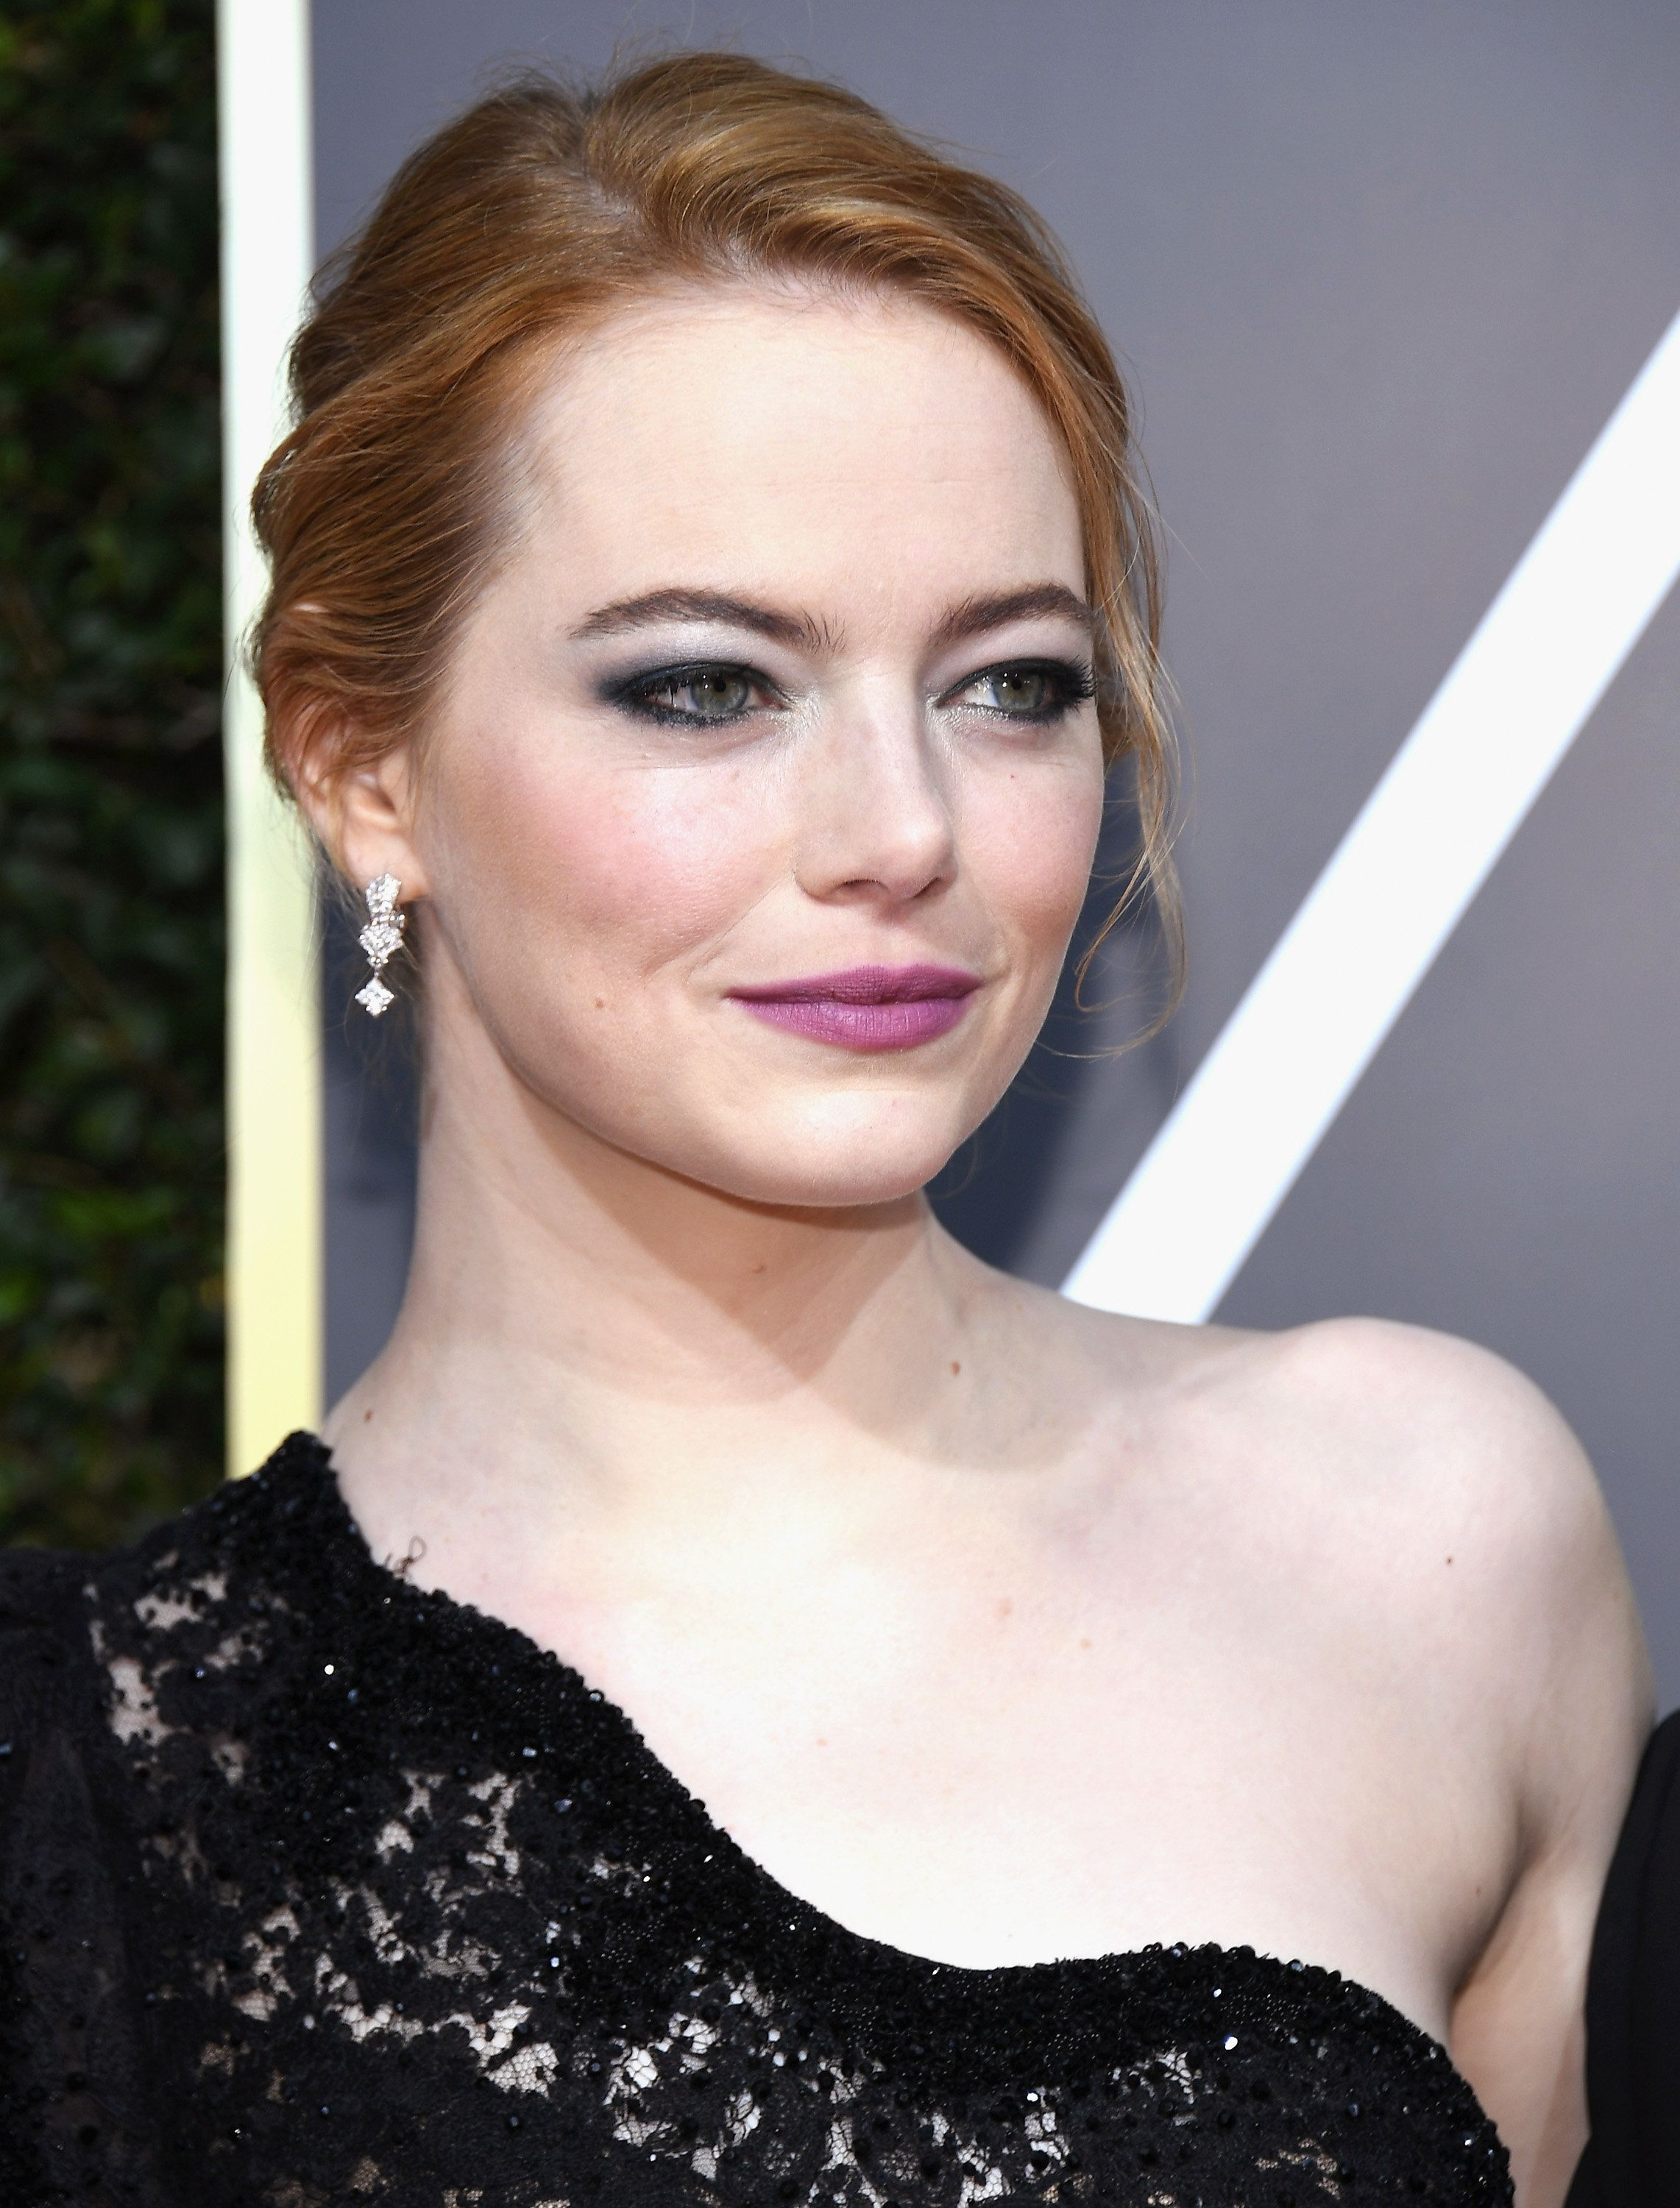 BEVERLY HILLS, CA - JANUARY 07:  75th ANNUAL GOLDEN GLOBE AWARDS -- Pictured: Emma Stone arrives to the 75th Annual Golden Globe Awards held at the Beverly Hilton Hotel on January 7, 2018.  (Photo by Kevork Djansezian/NBC/NBCU Photo Bank via Getty Images)